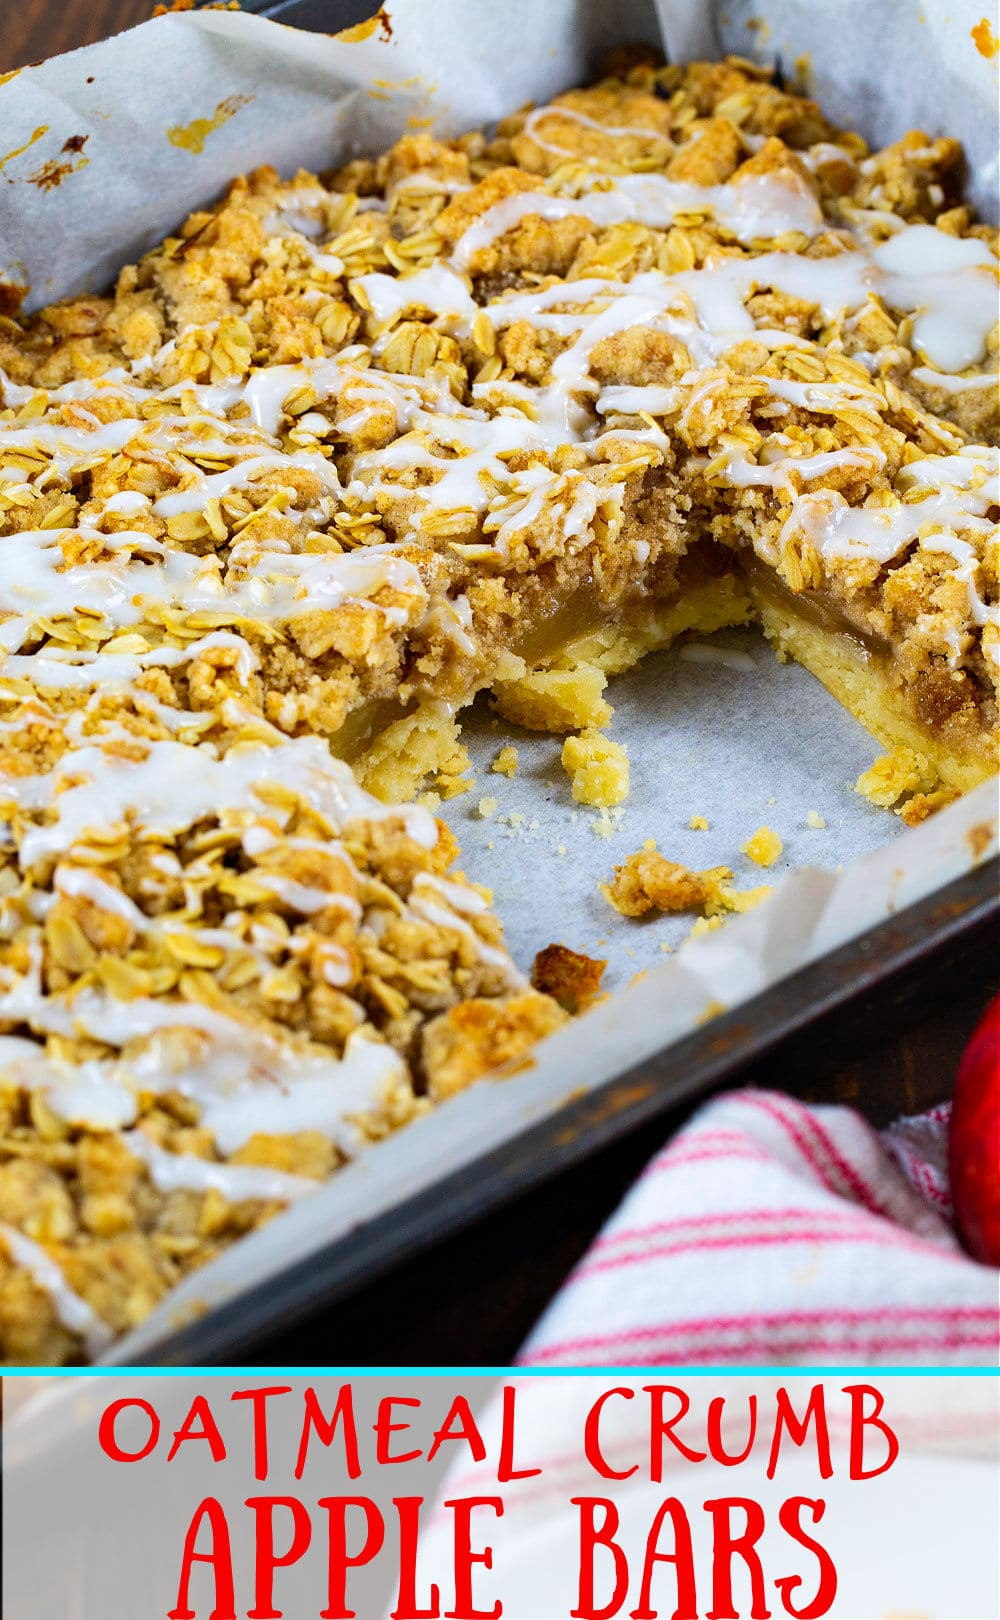 Apple Bars in pan with one bar removed.